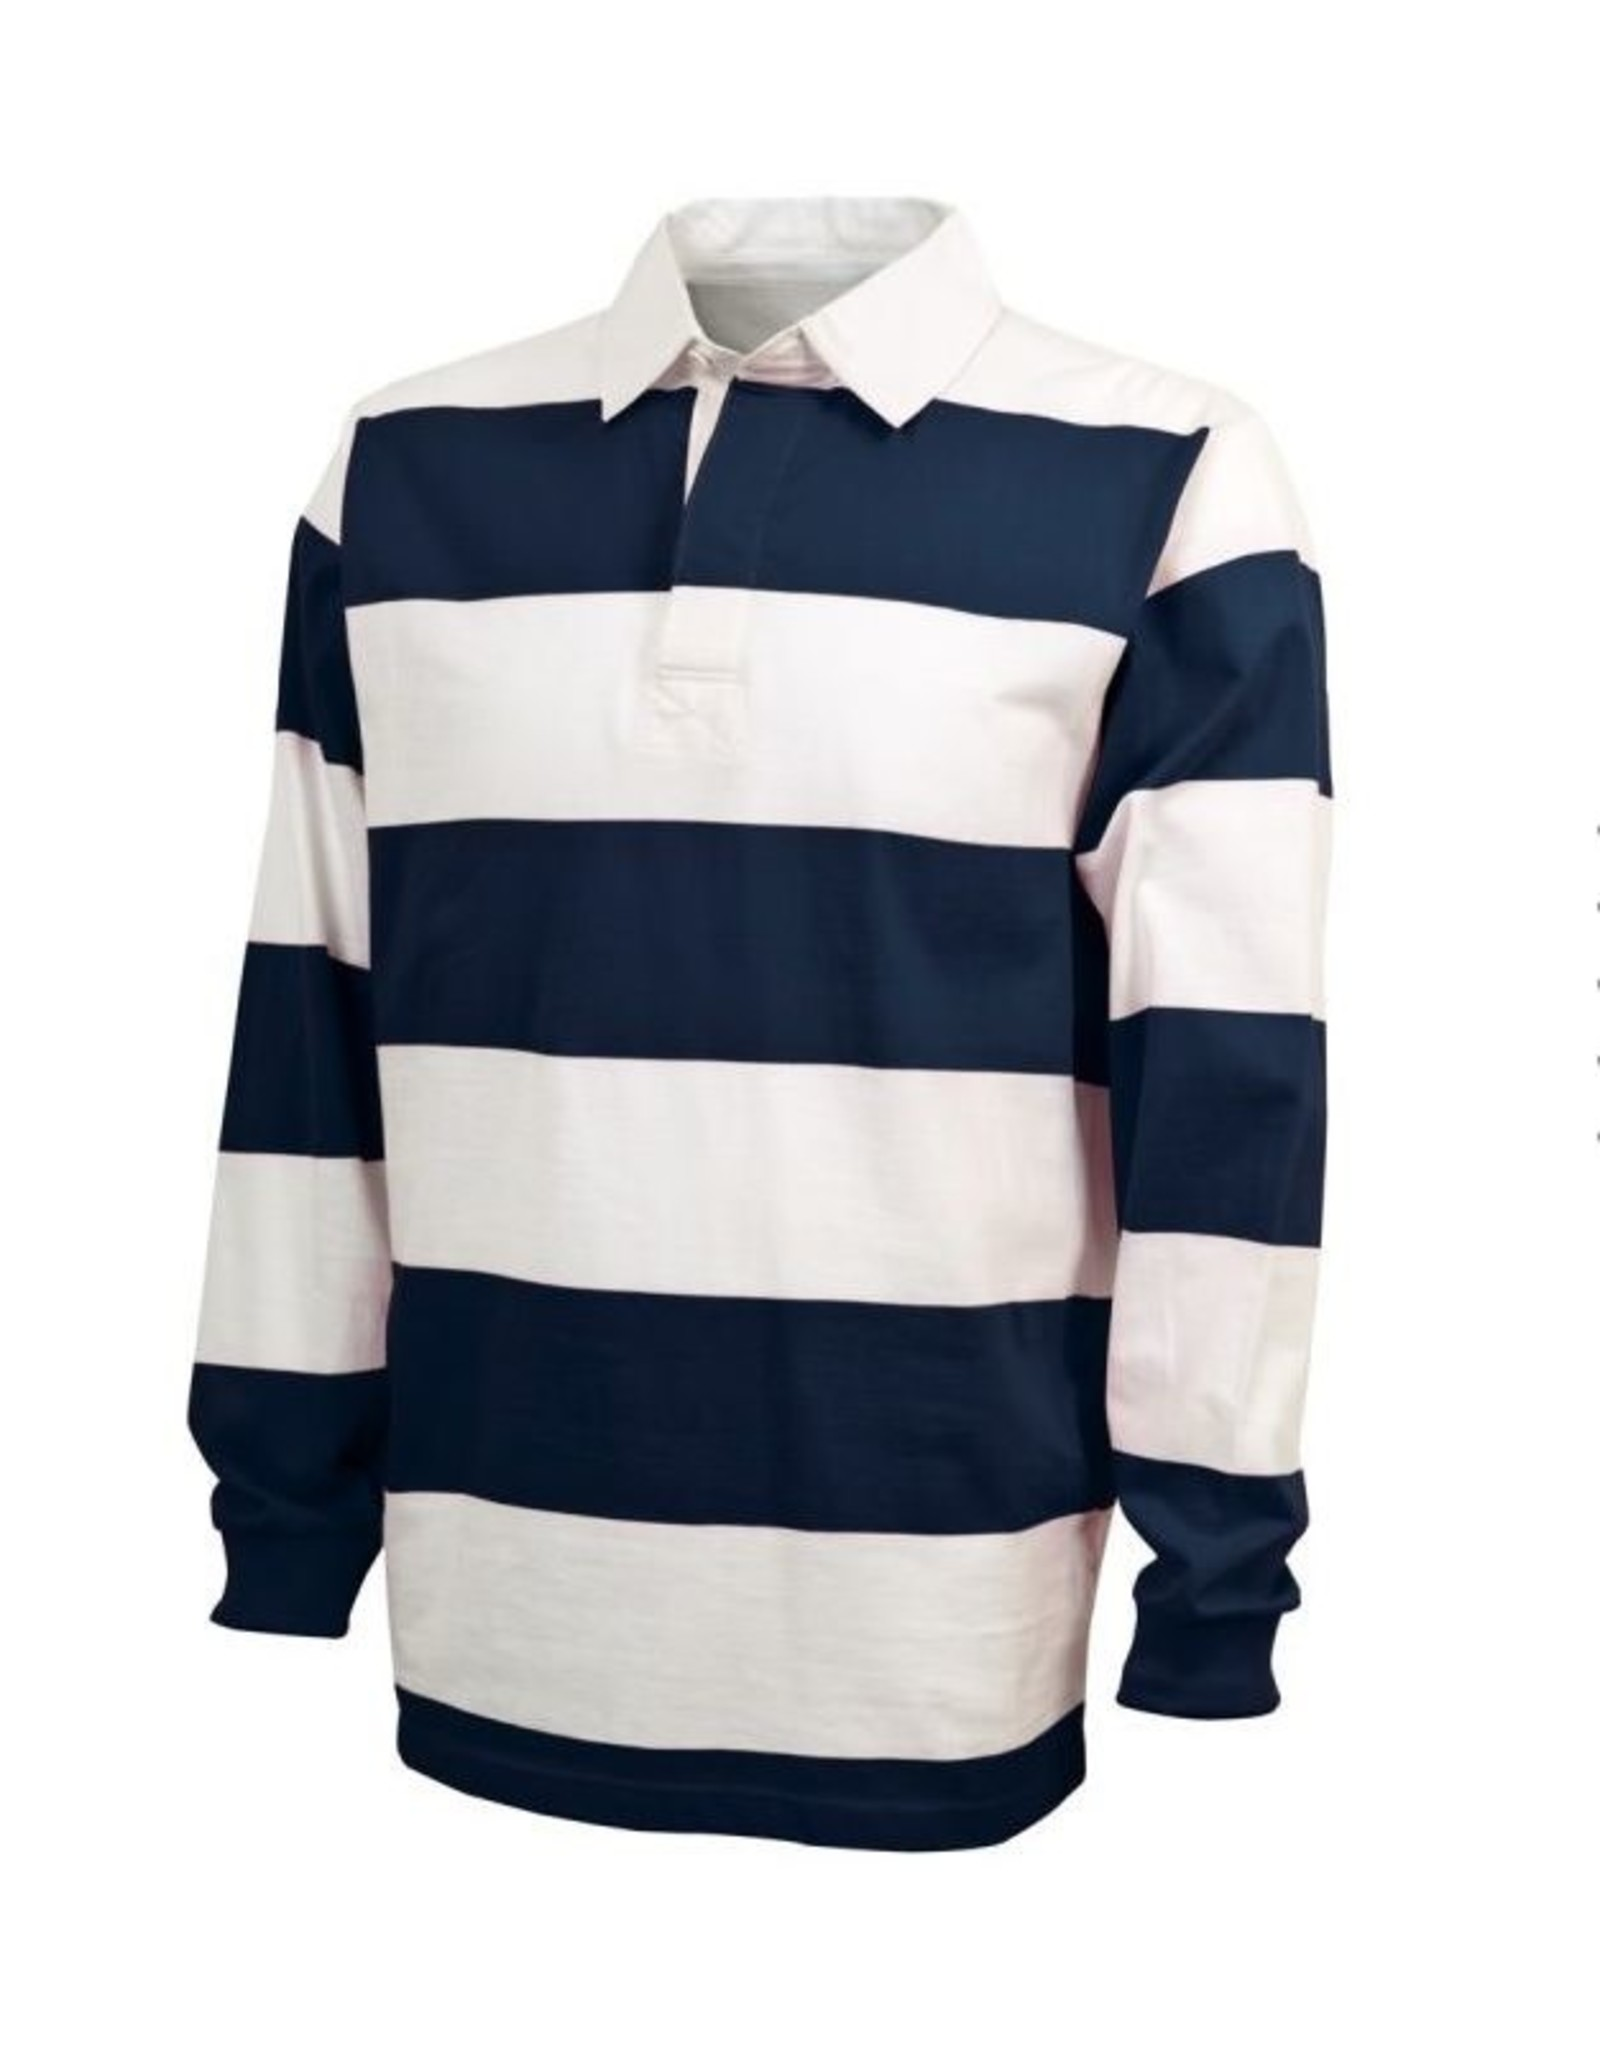 NON-UNIFORM Classic Rugby Shirt, Custom, men's/unisex